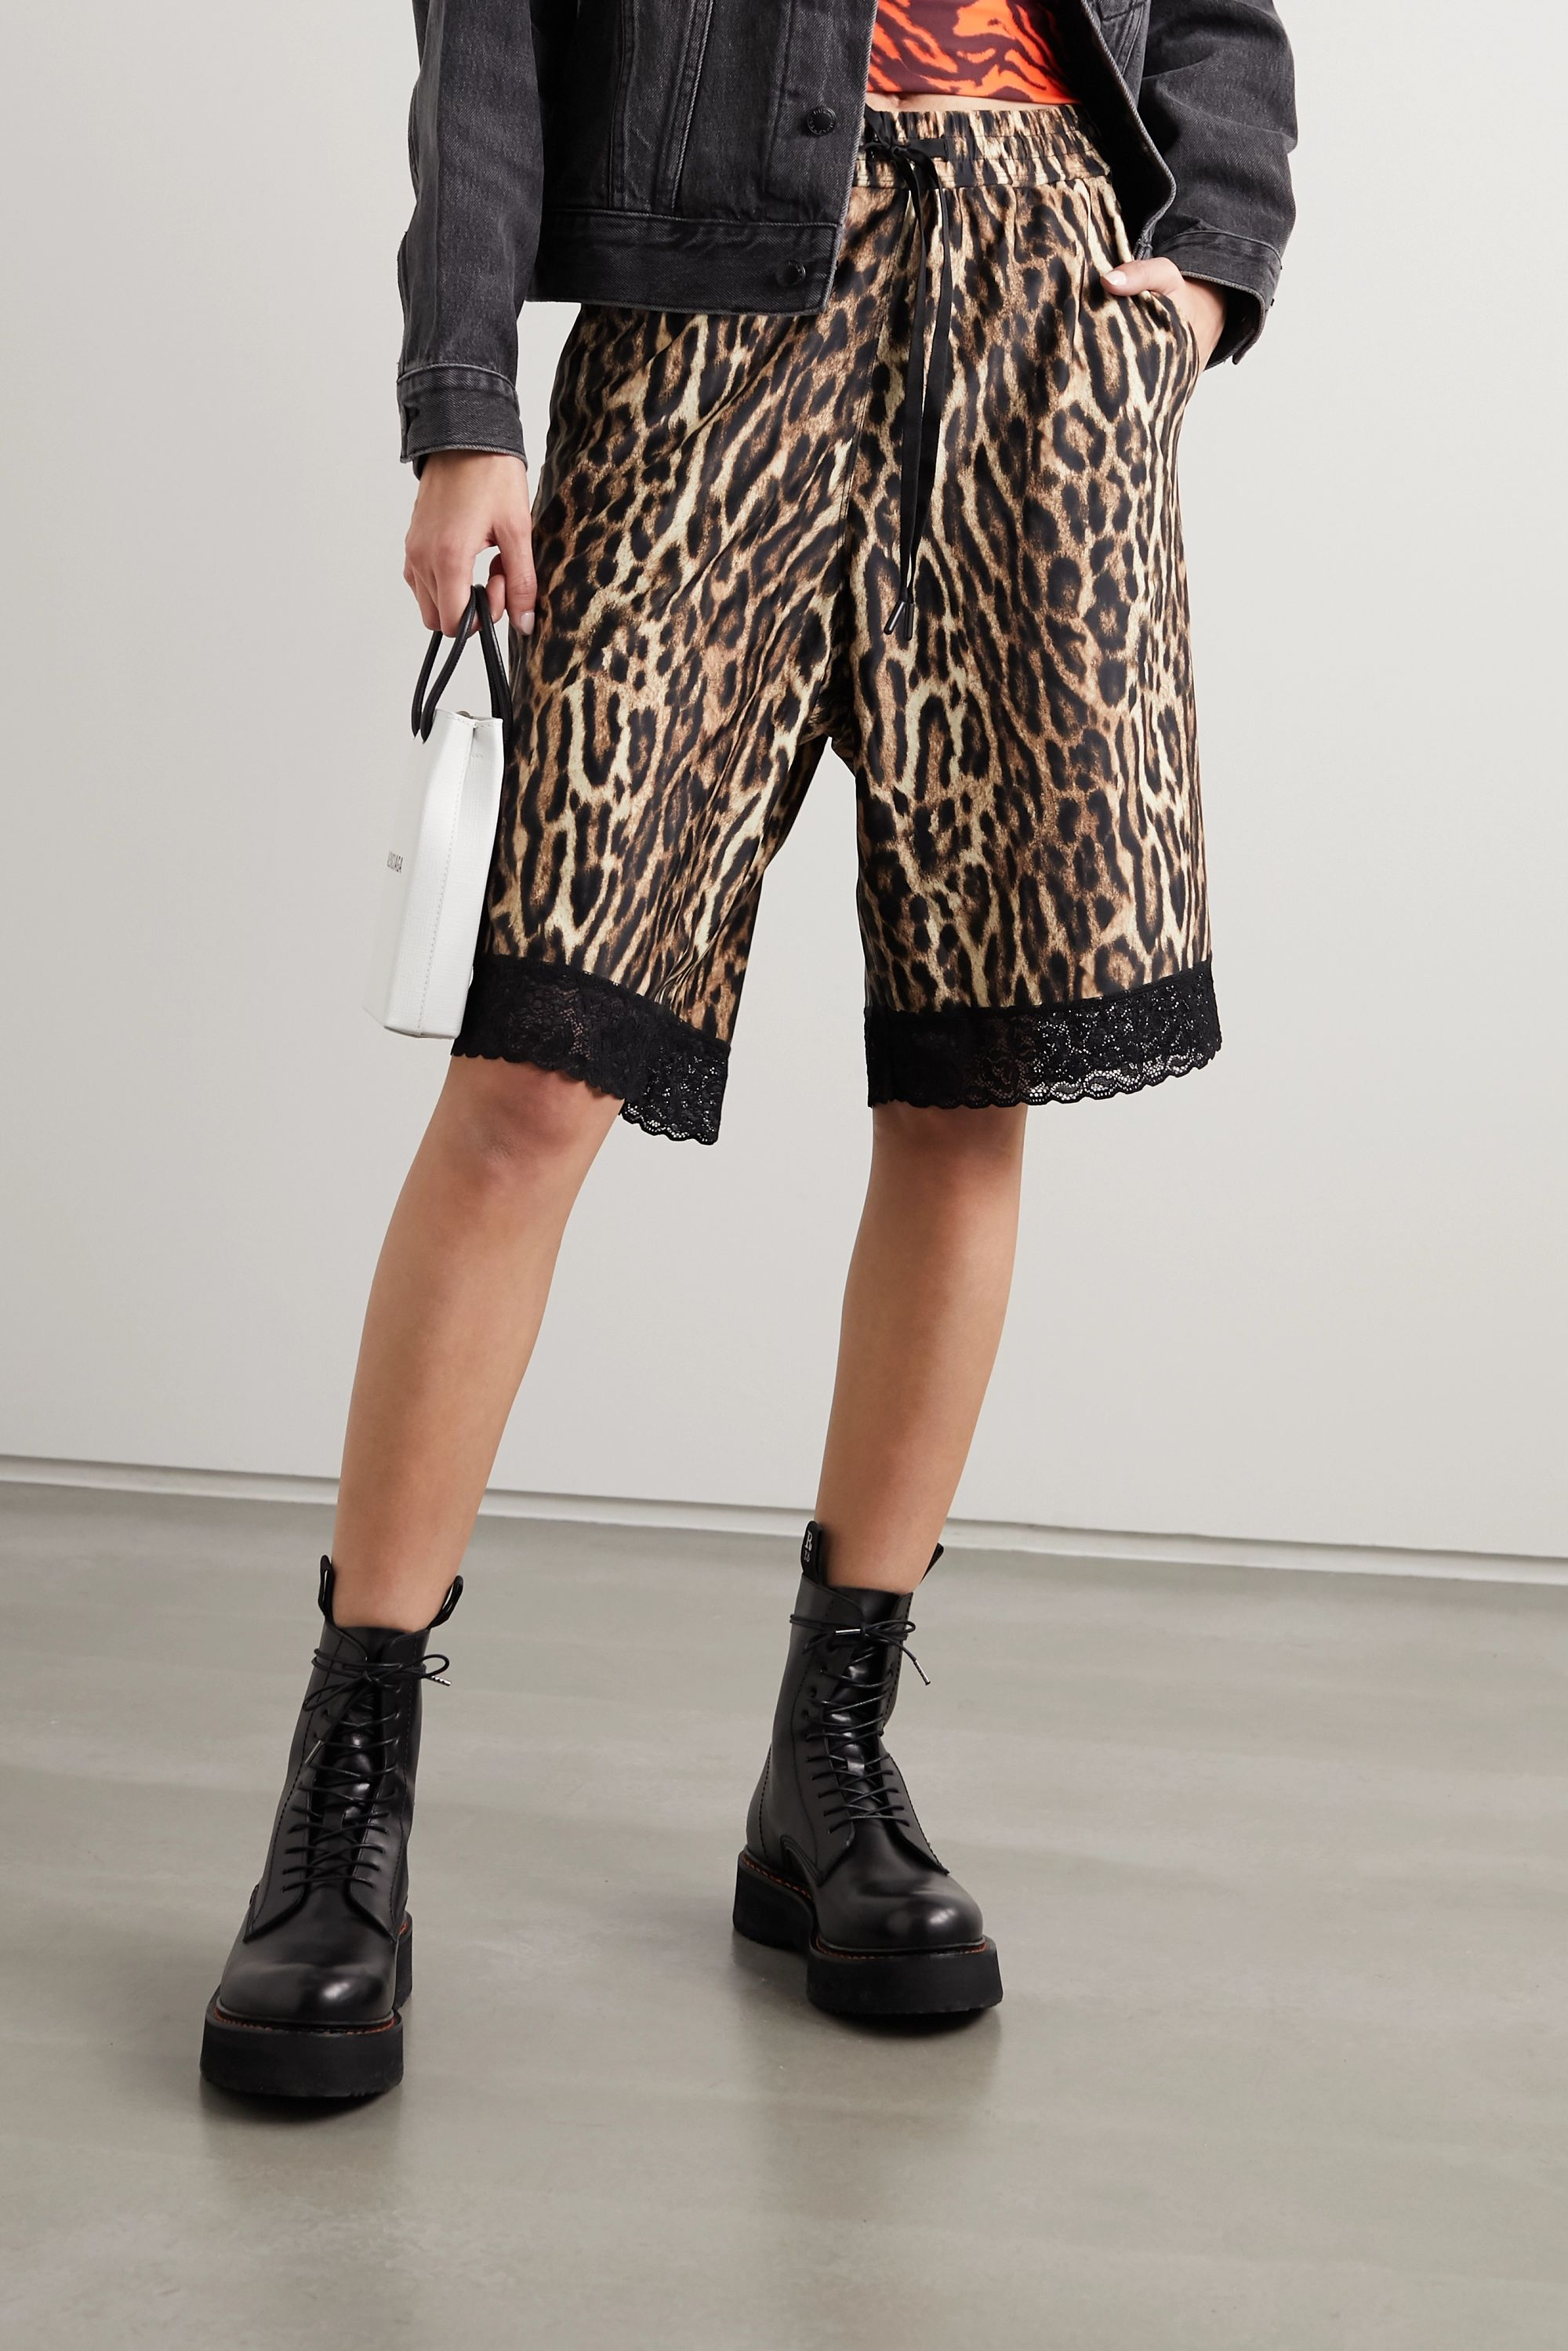 Twin Fantasy Lace-trimmed leopard-print stretch-jersey shorts